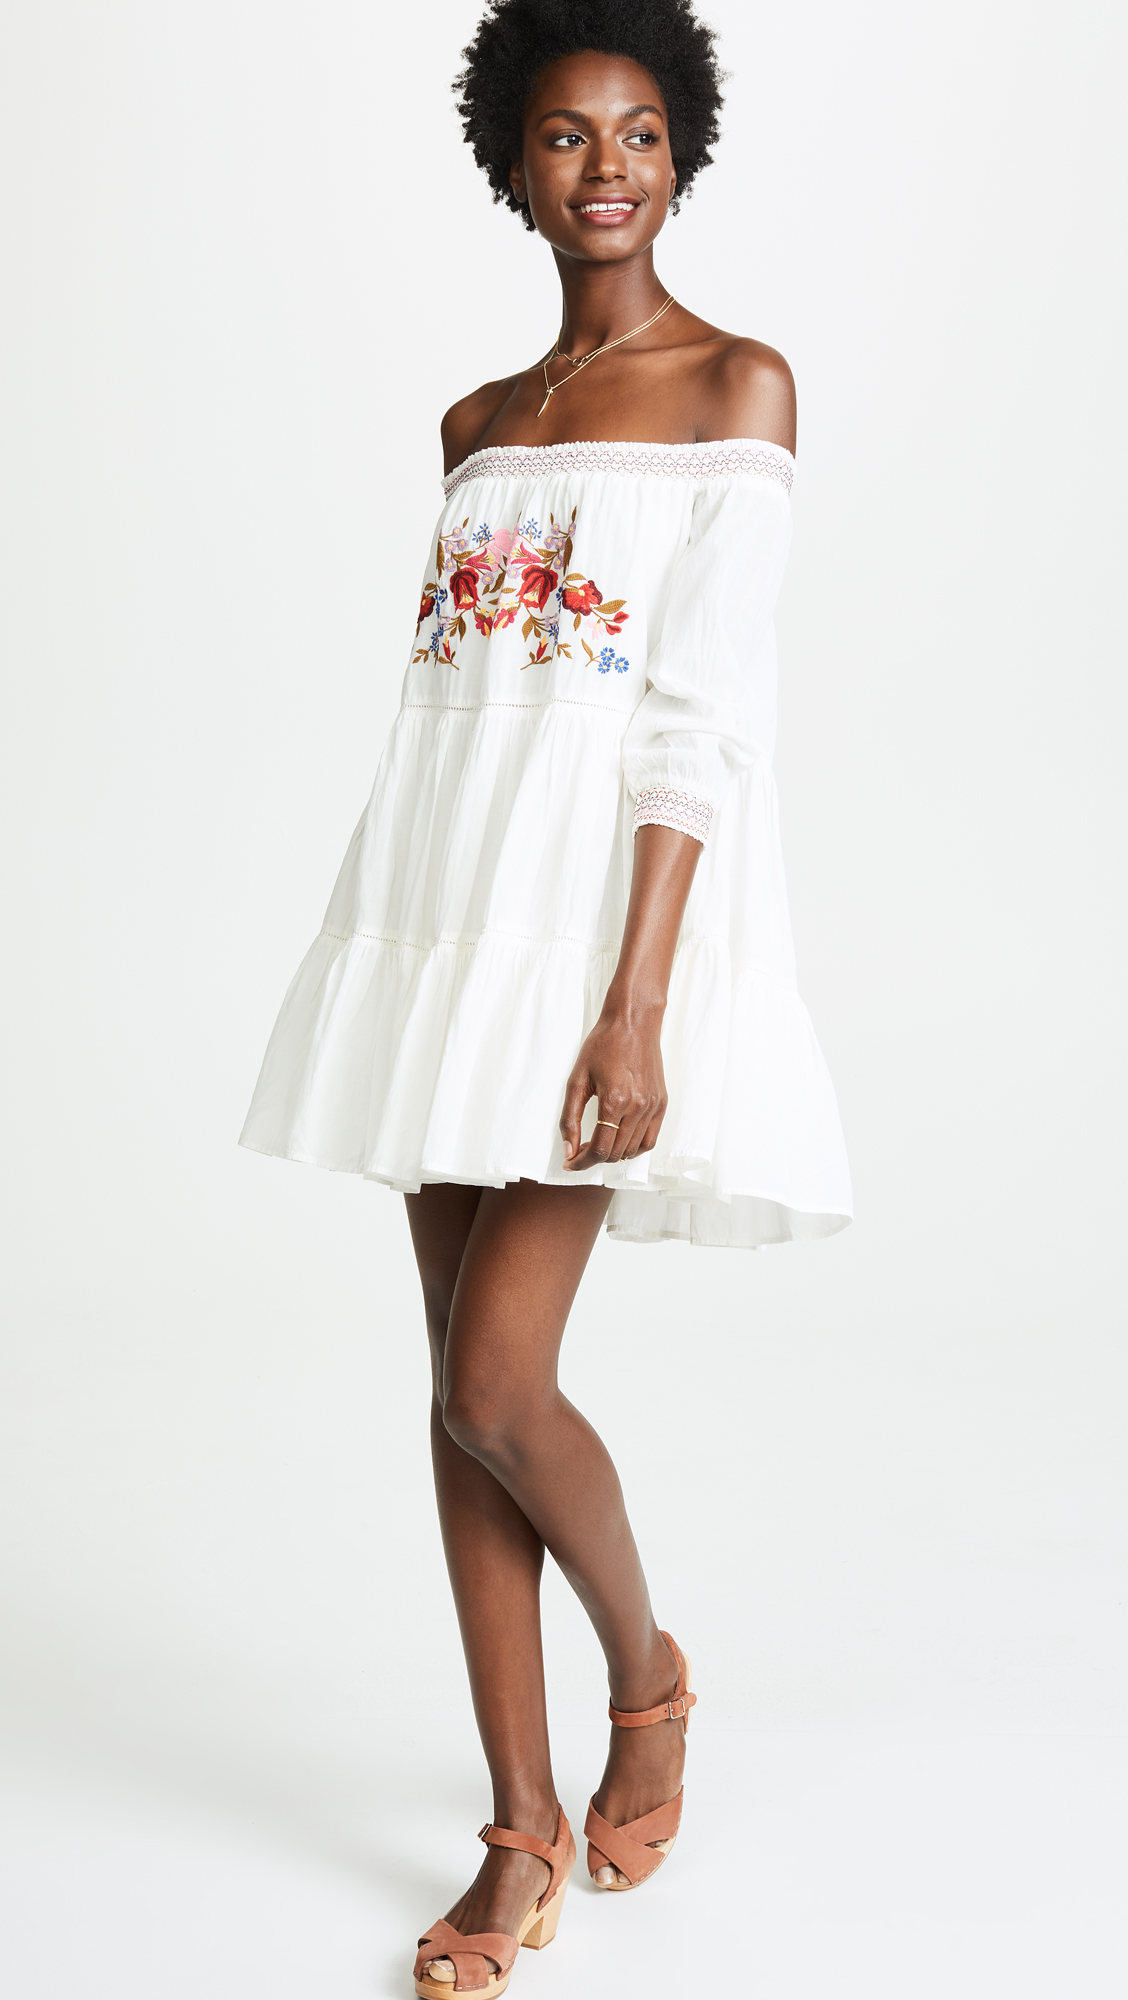 Free People Occasion Dresses Summer 2012 Free People Occasion Dresses Summer 2012 new pictures